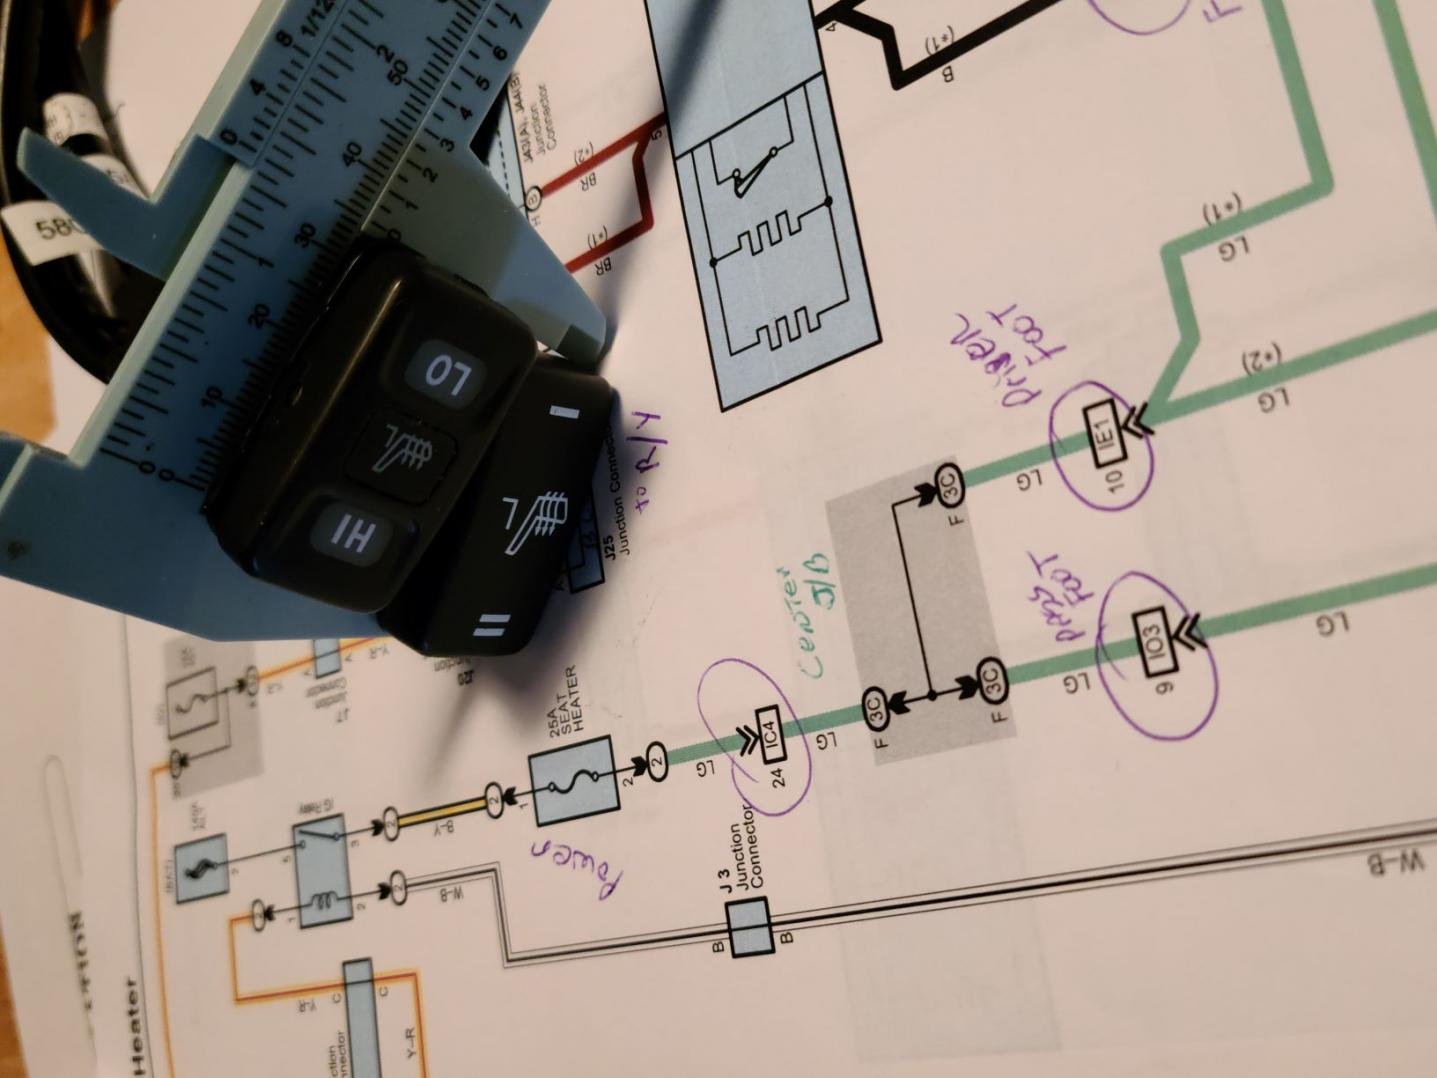 Wiring for heated seats and diagram for power seats-20210116_083443-_-r-jpg